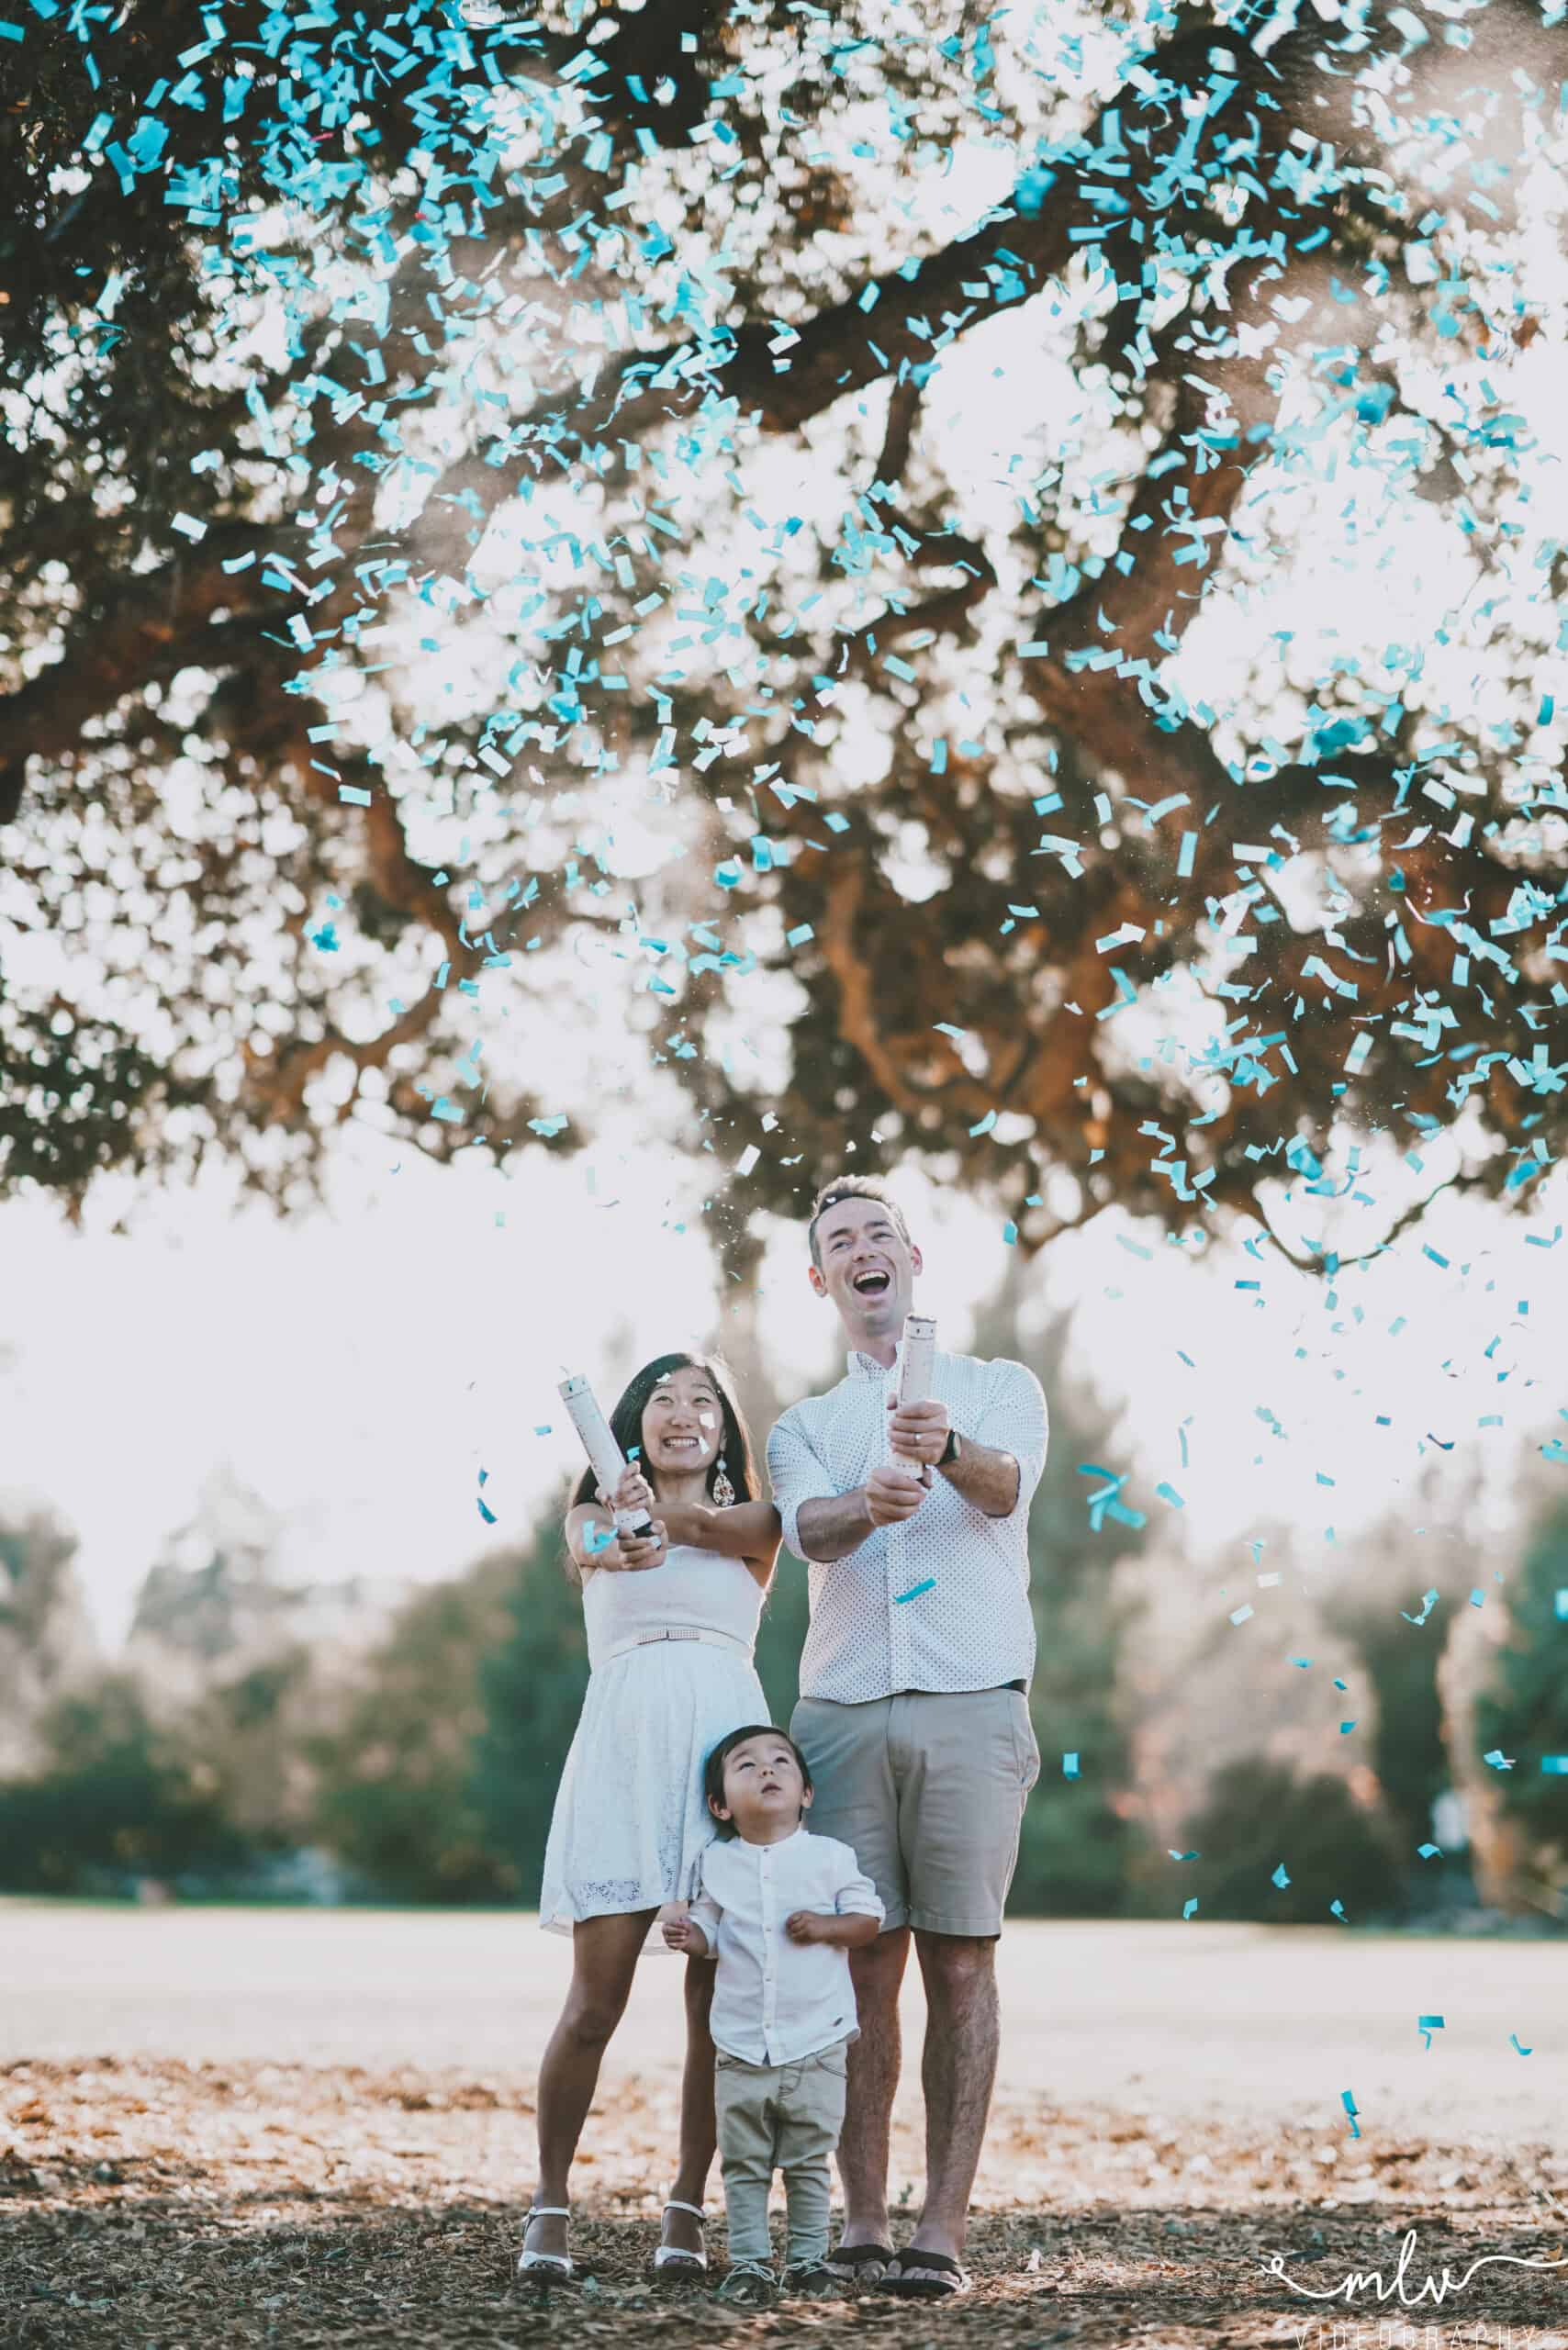 Bay Area gender reveal photography celebrating baby boy with confetti